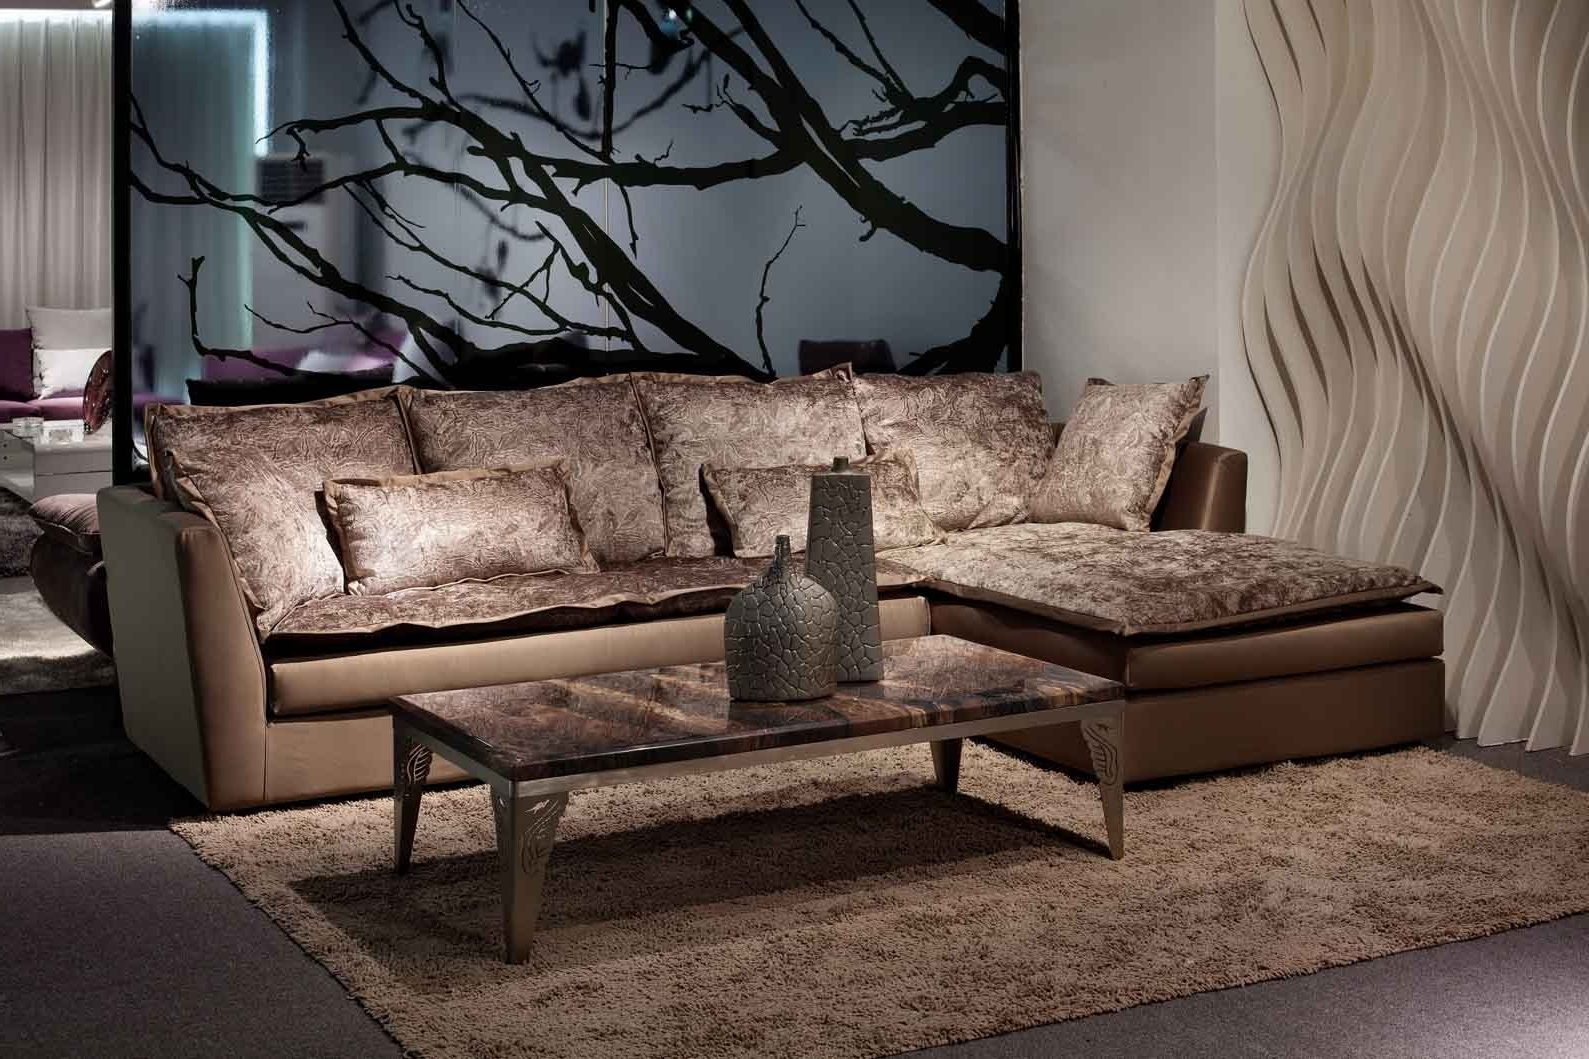 Couch: Astounding Deals On Couches Best Deal On Couches, Overstock With Popular Sydney Sectional Sofas (View 6 of 15)